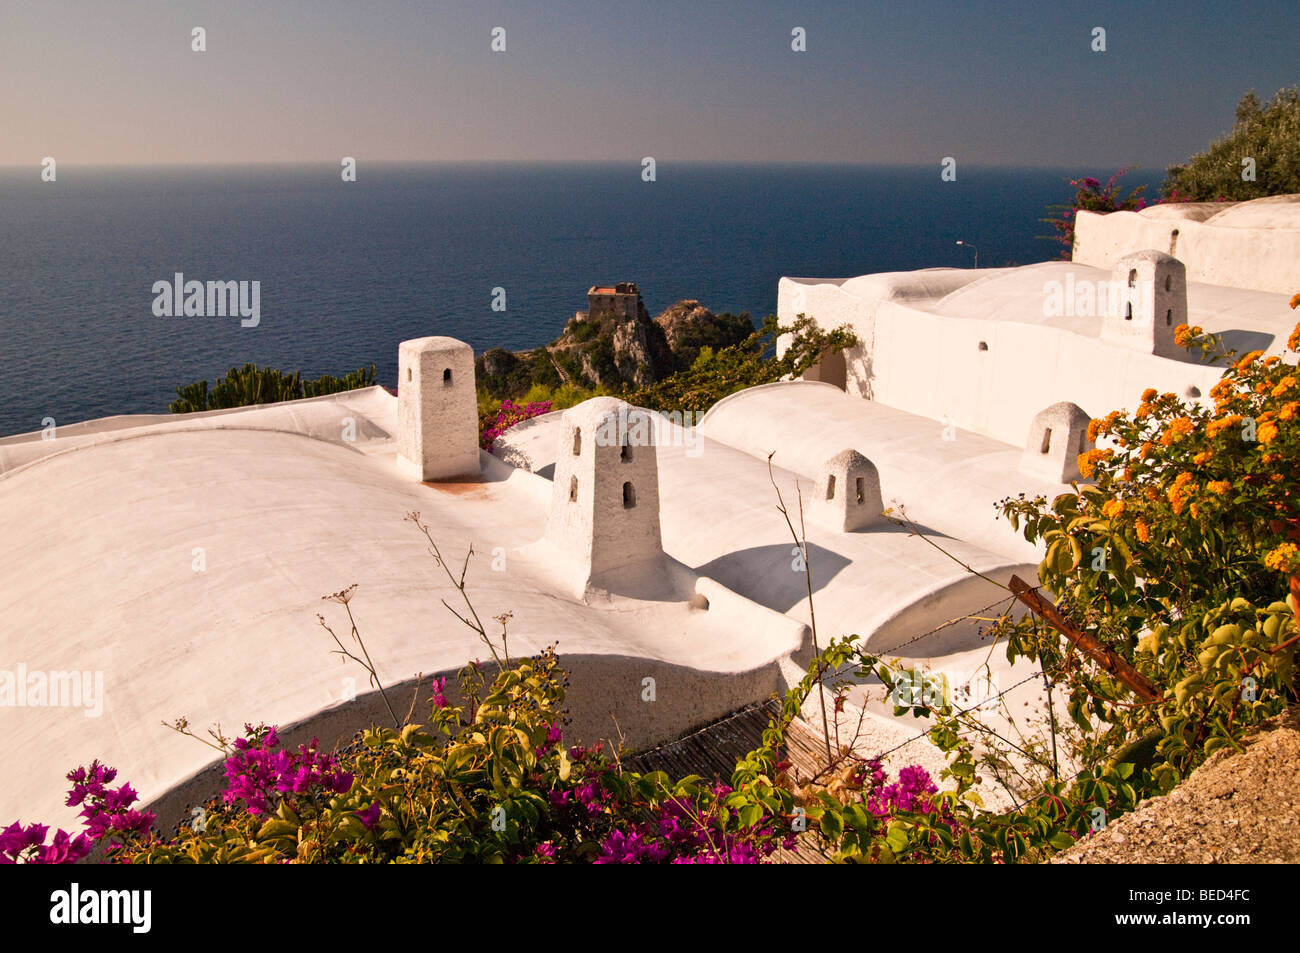 Rooftops, castle and sea, Conca Dei Marini, Italy - Stock Image